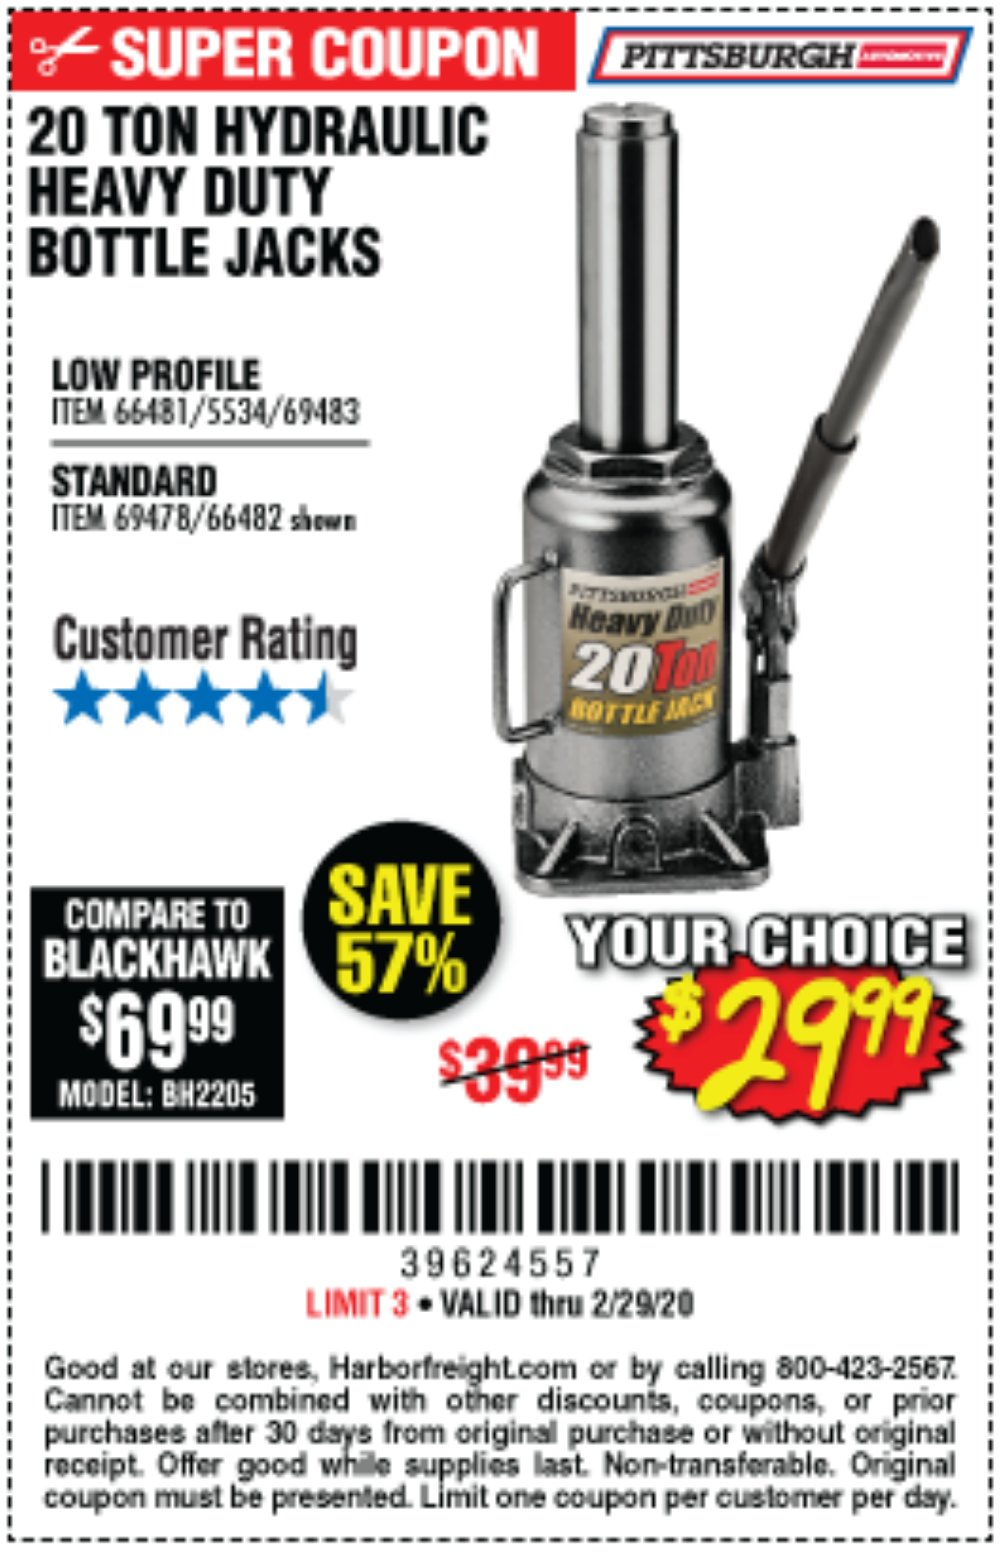 Harbor Freight Coupon, HF Coupons - 66481